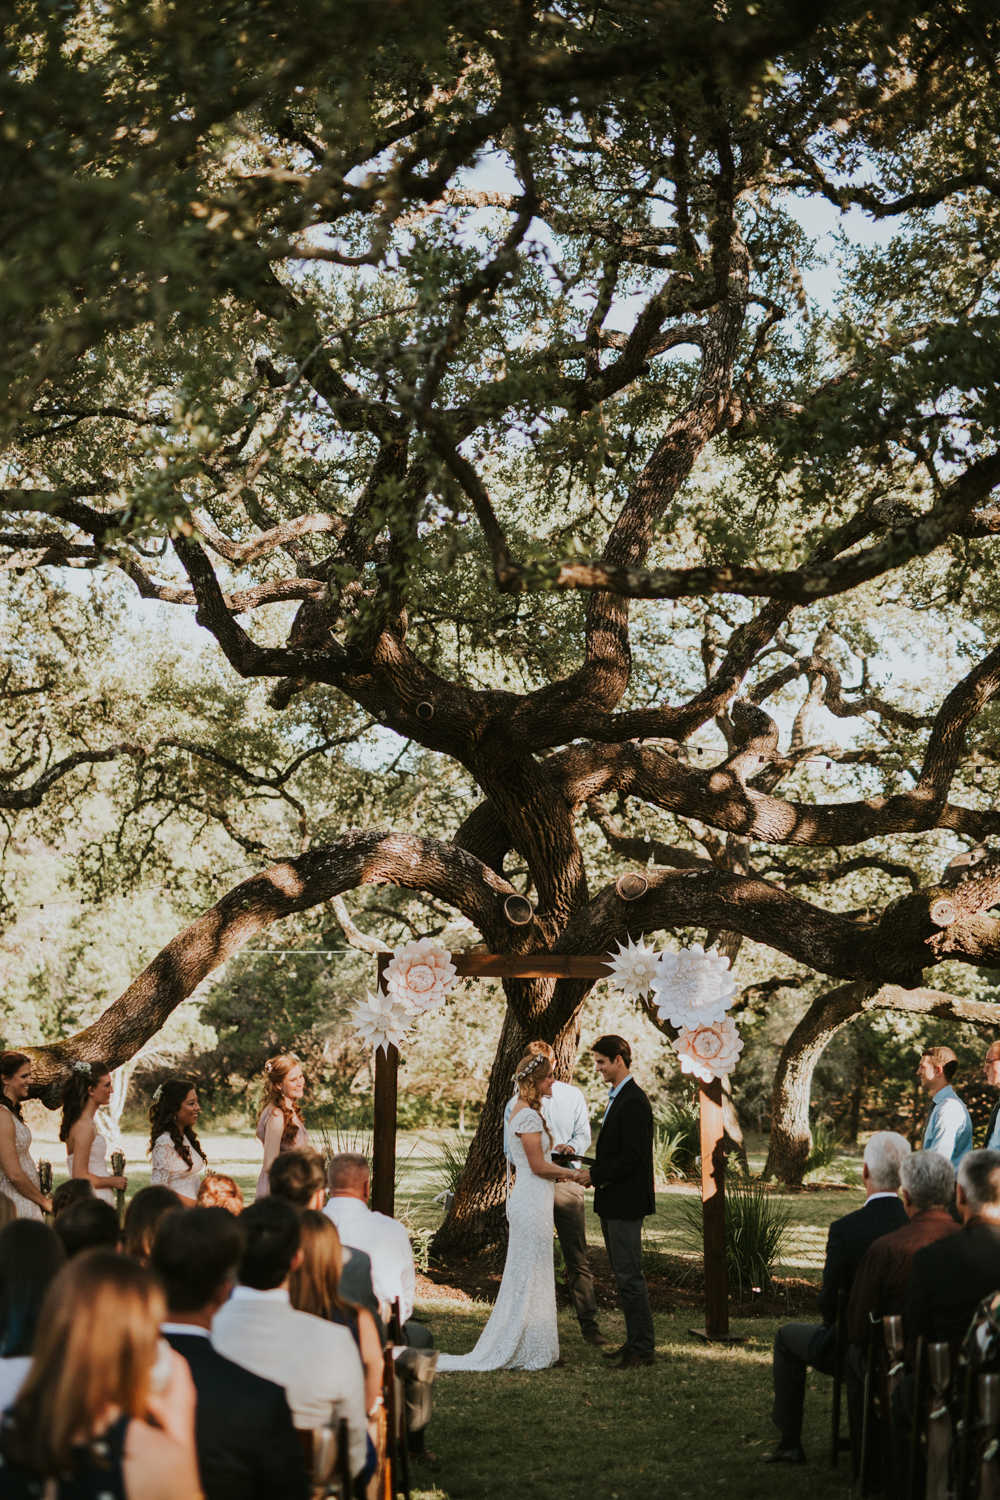 Rustic Ranch Wedding Photography - Diana Ascarrunz Photography - Austin Wedding Photographer-78.jpg